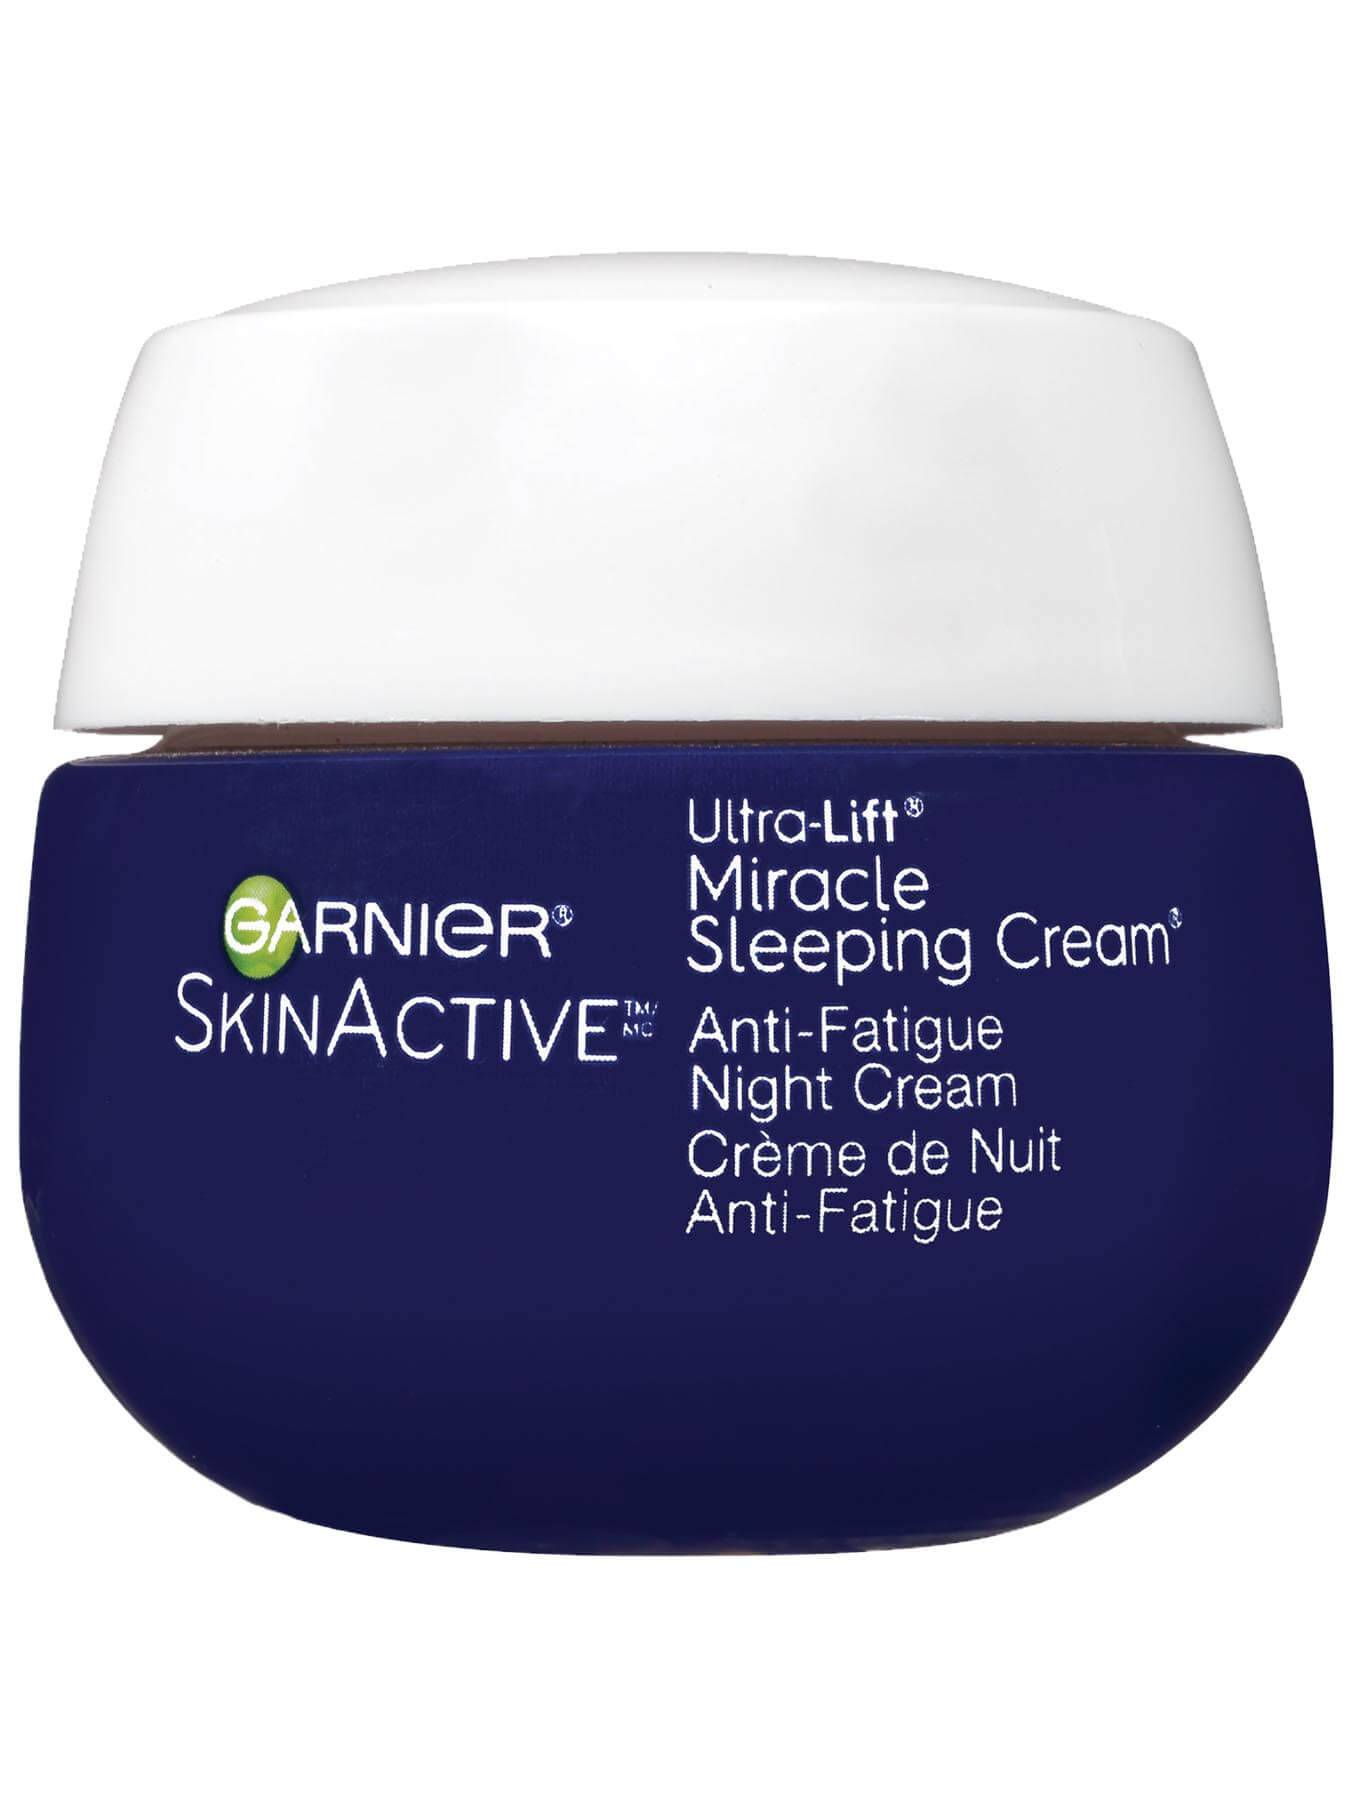 Front view of Ultra Lift Miracle Anti-Fatigue Sleeping Cream.